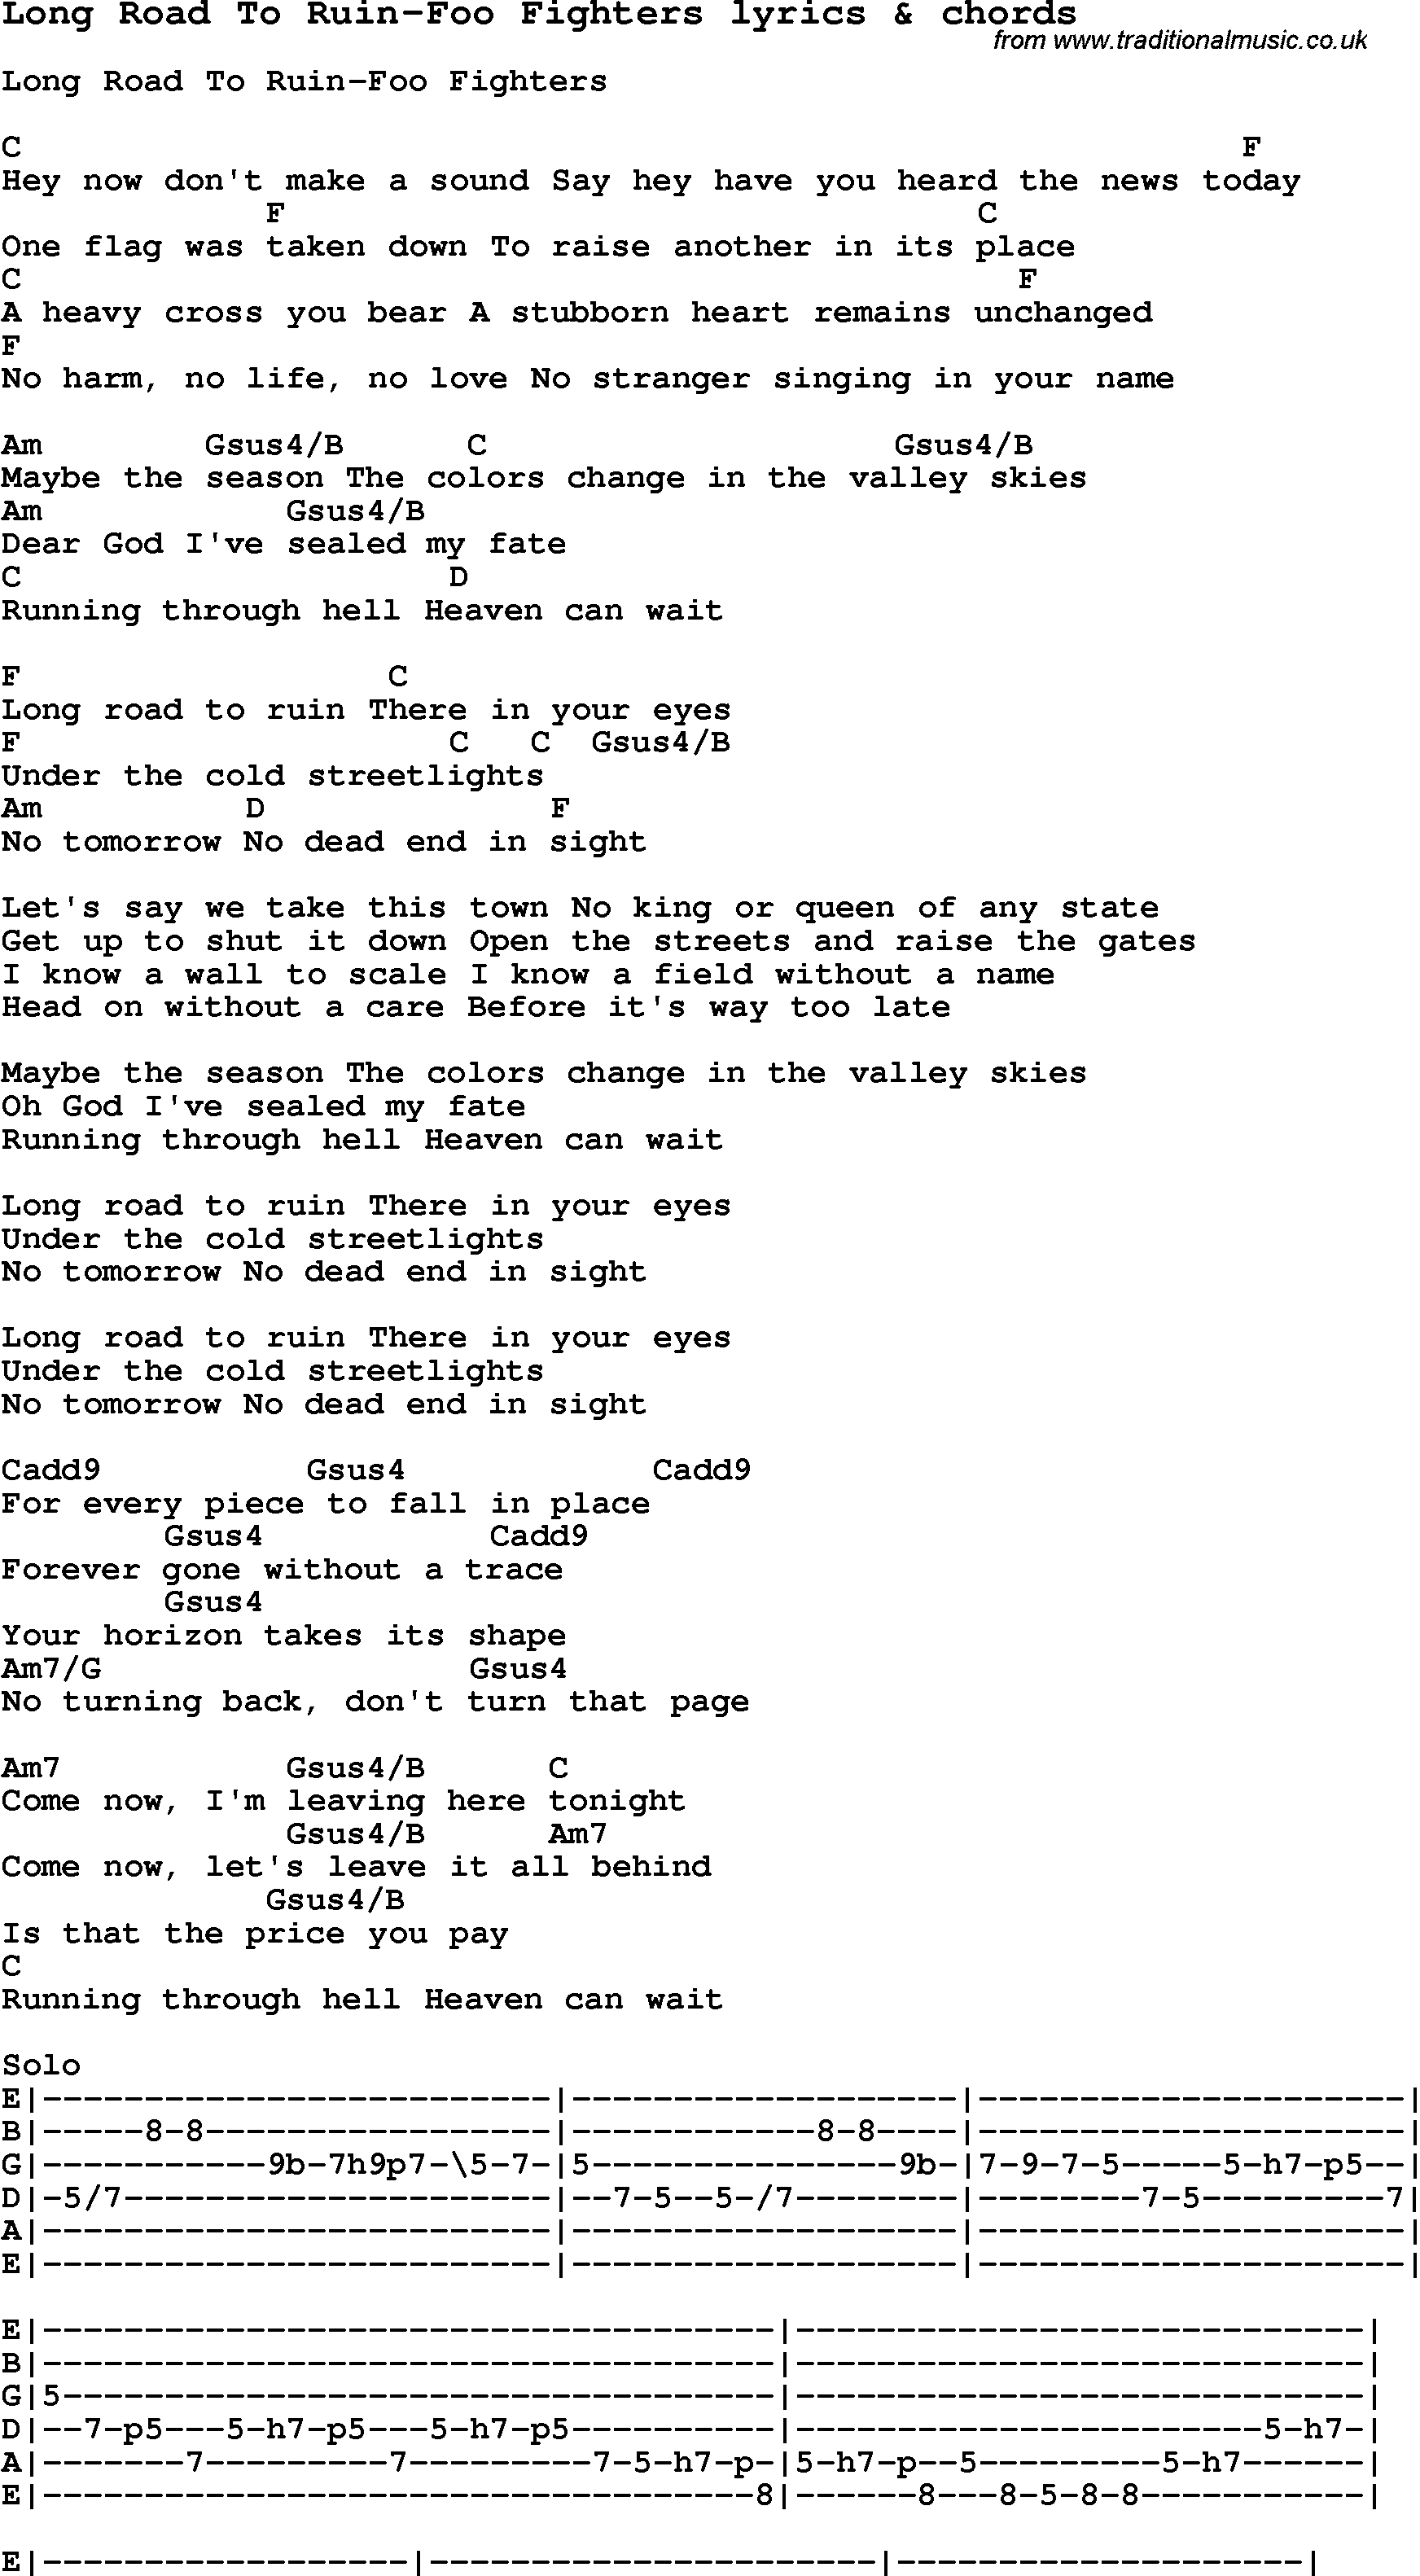 Love Song Lyrics Forlong Road To Ruin Foo Fighters With Chords